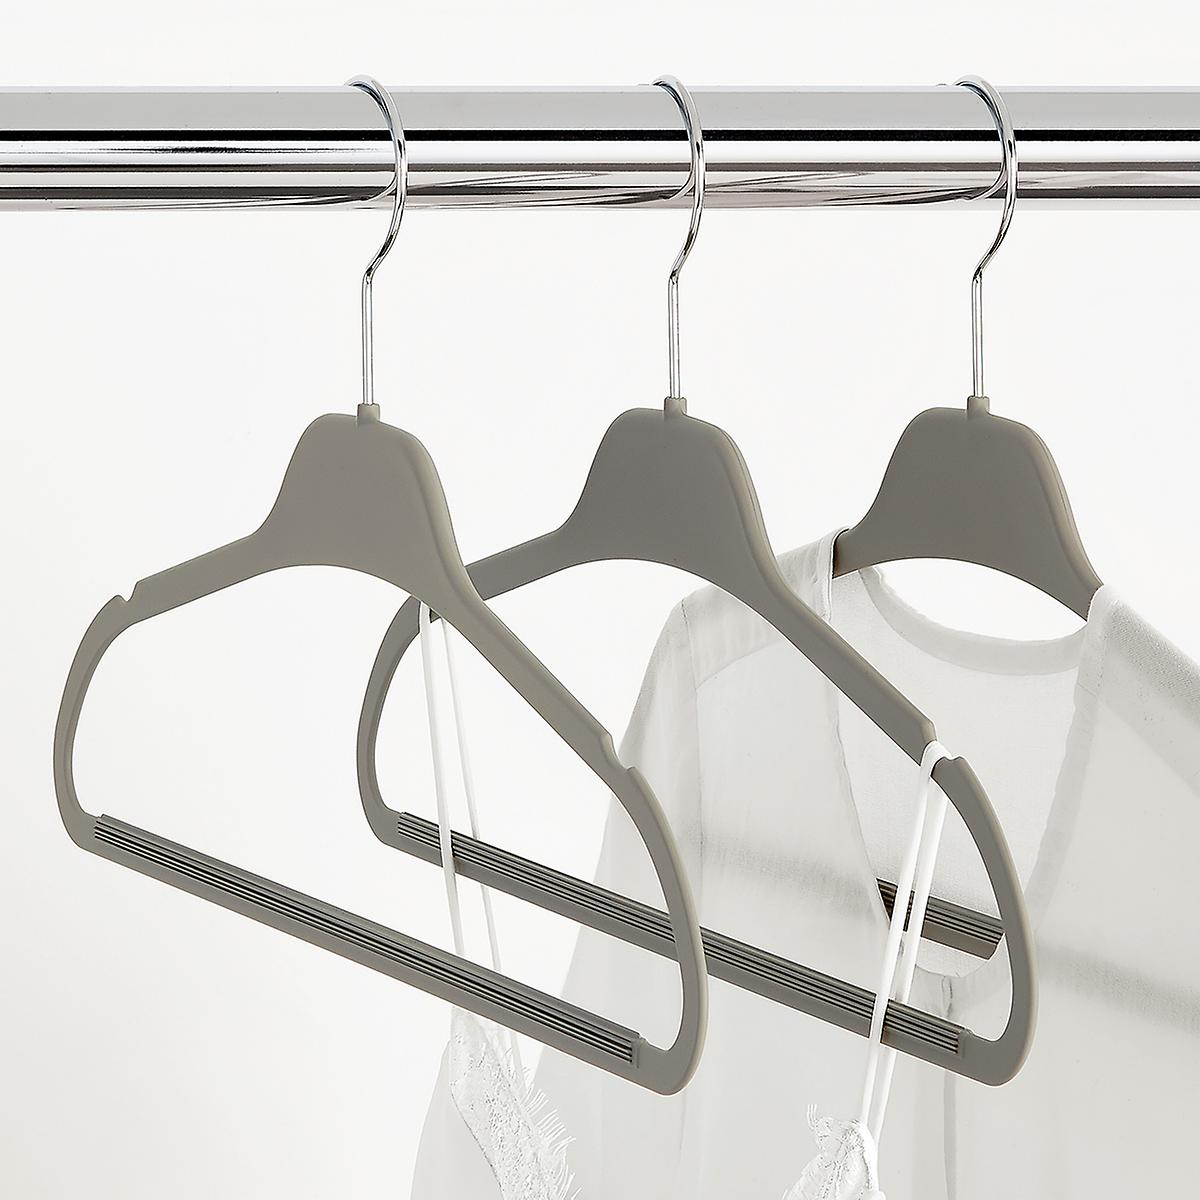 Grey Non-Slip Rubberized Suit Hangers Case of 120